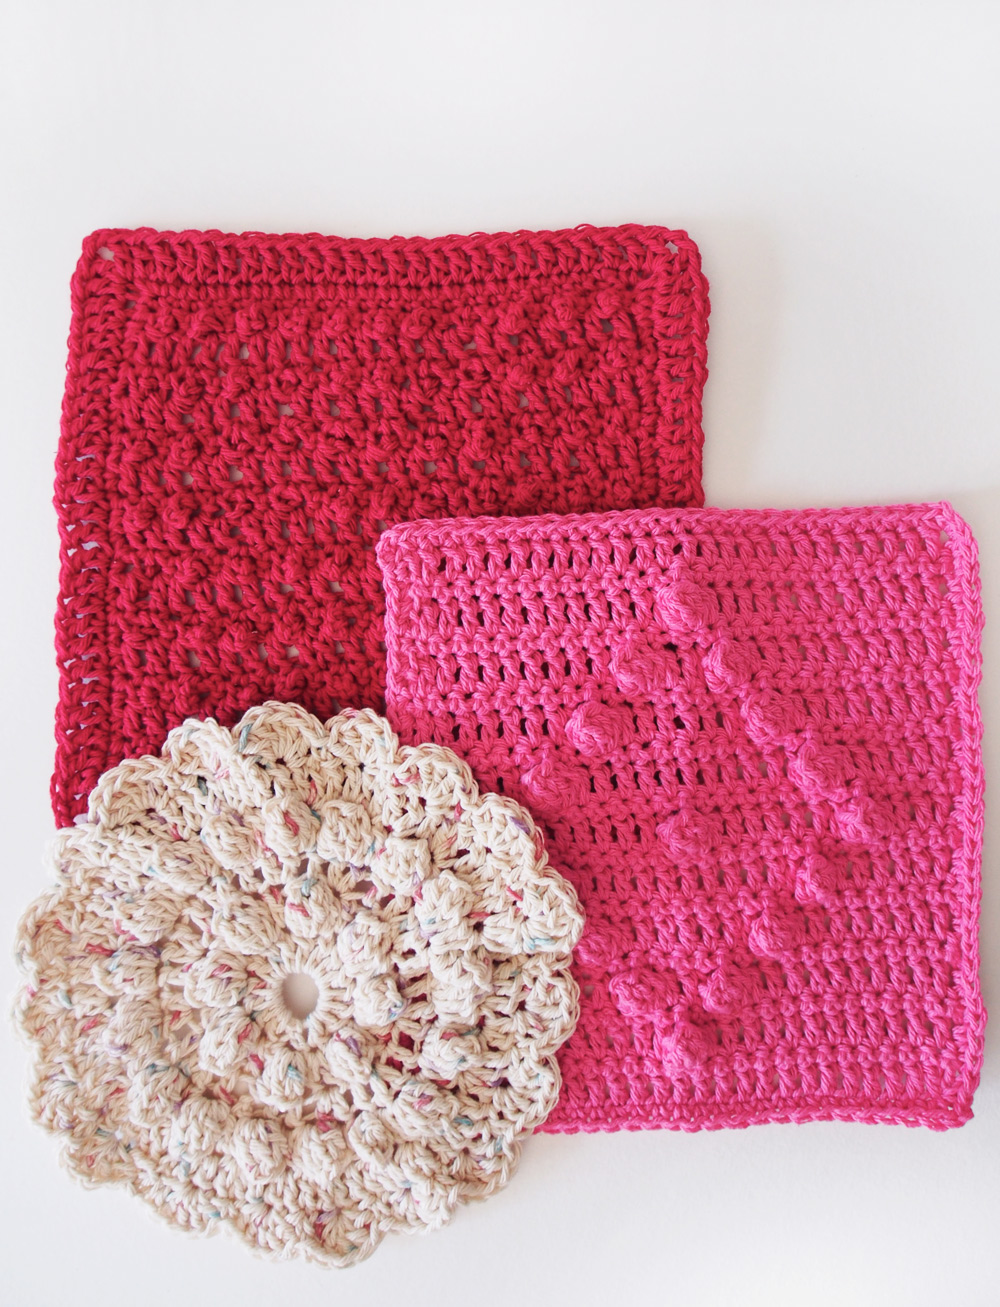 Westervin Shop: Handmade Crochet Dishcloth Set in Raspberry, Bubblegum, and Cream